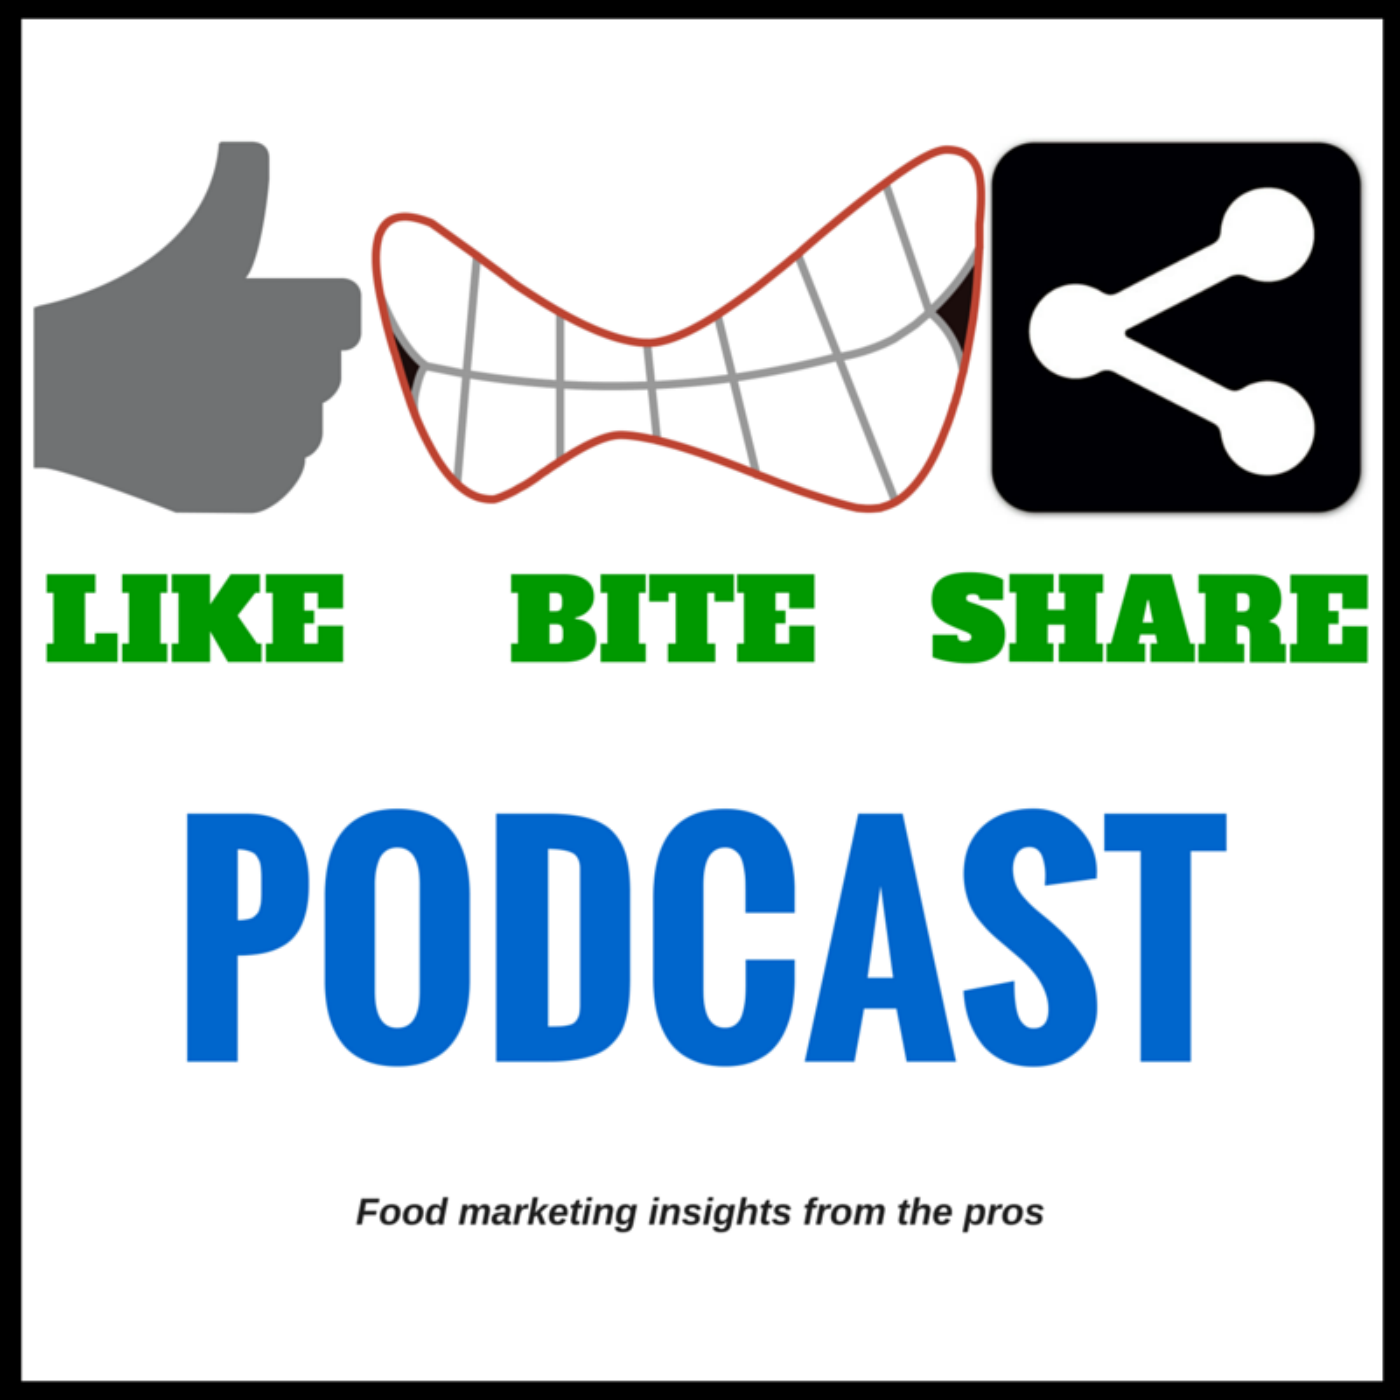 Like, Bite & Share Podcast